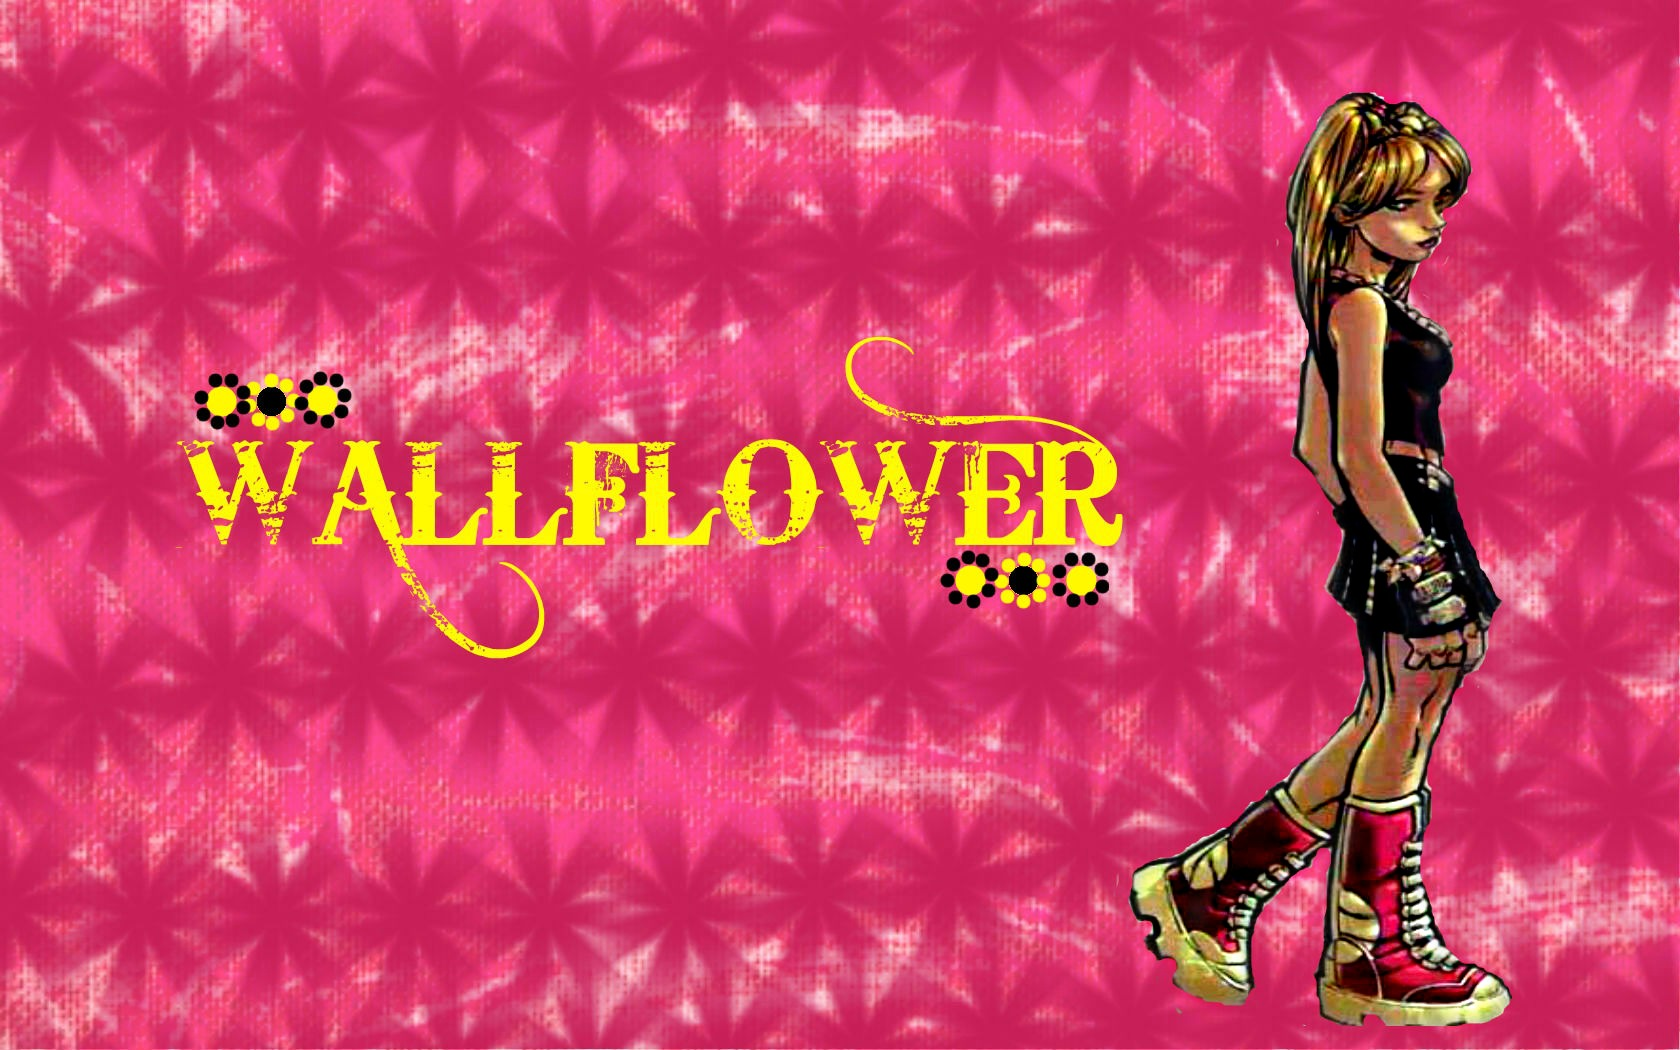 Wallflower Laurie Collins Pink Wallpaper X Men Wallpaper Fanpop